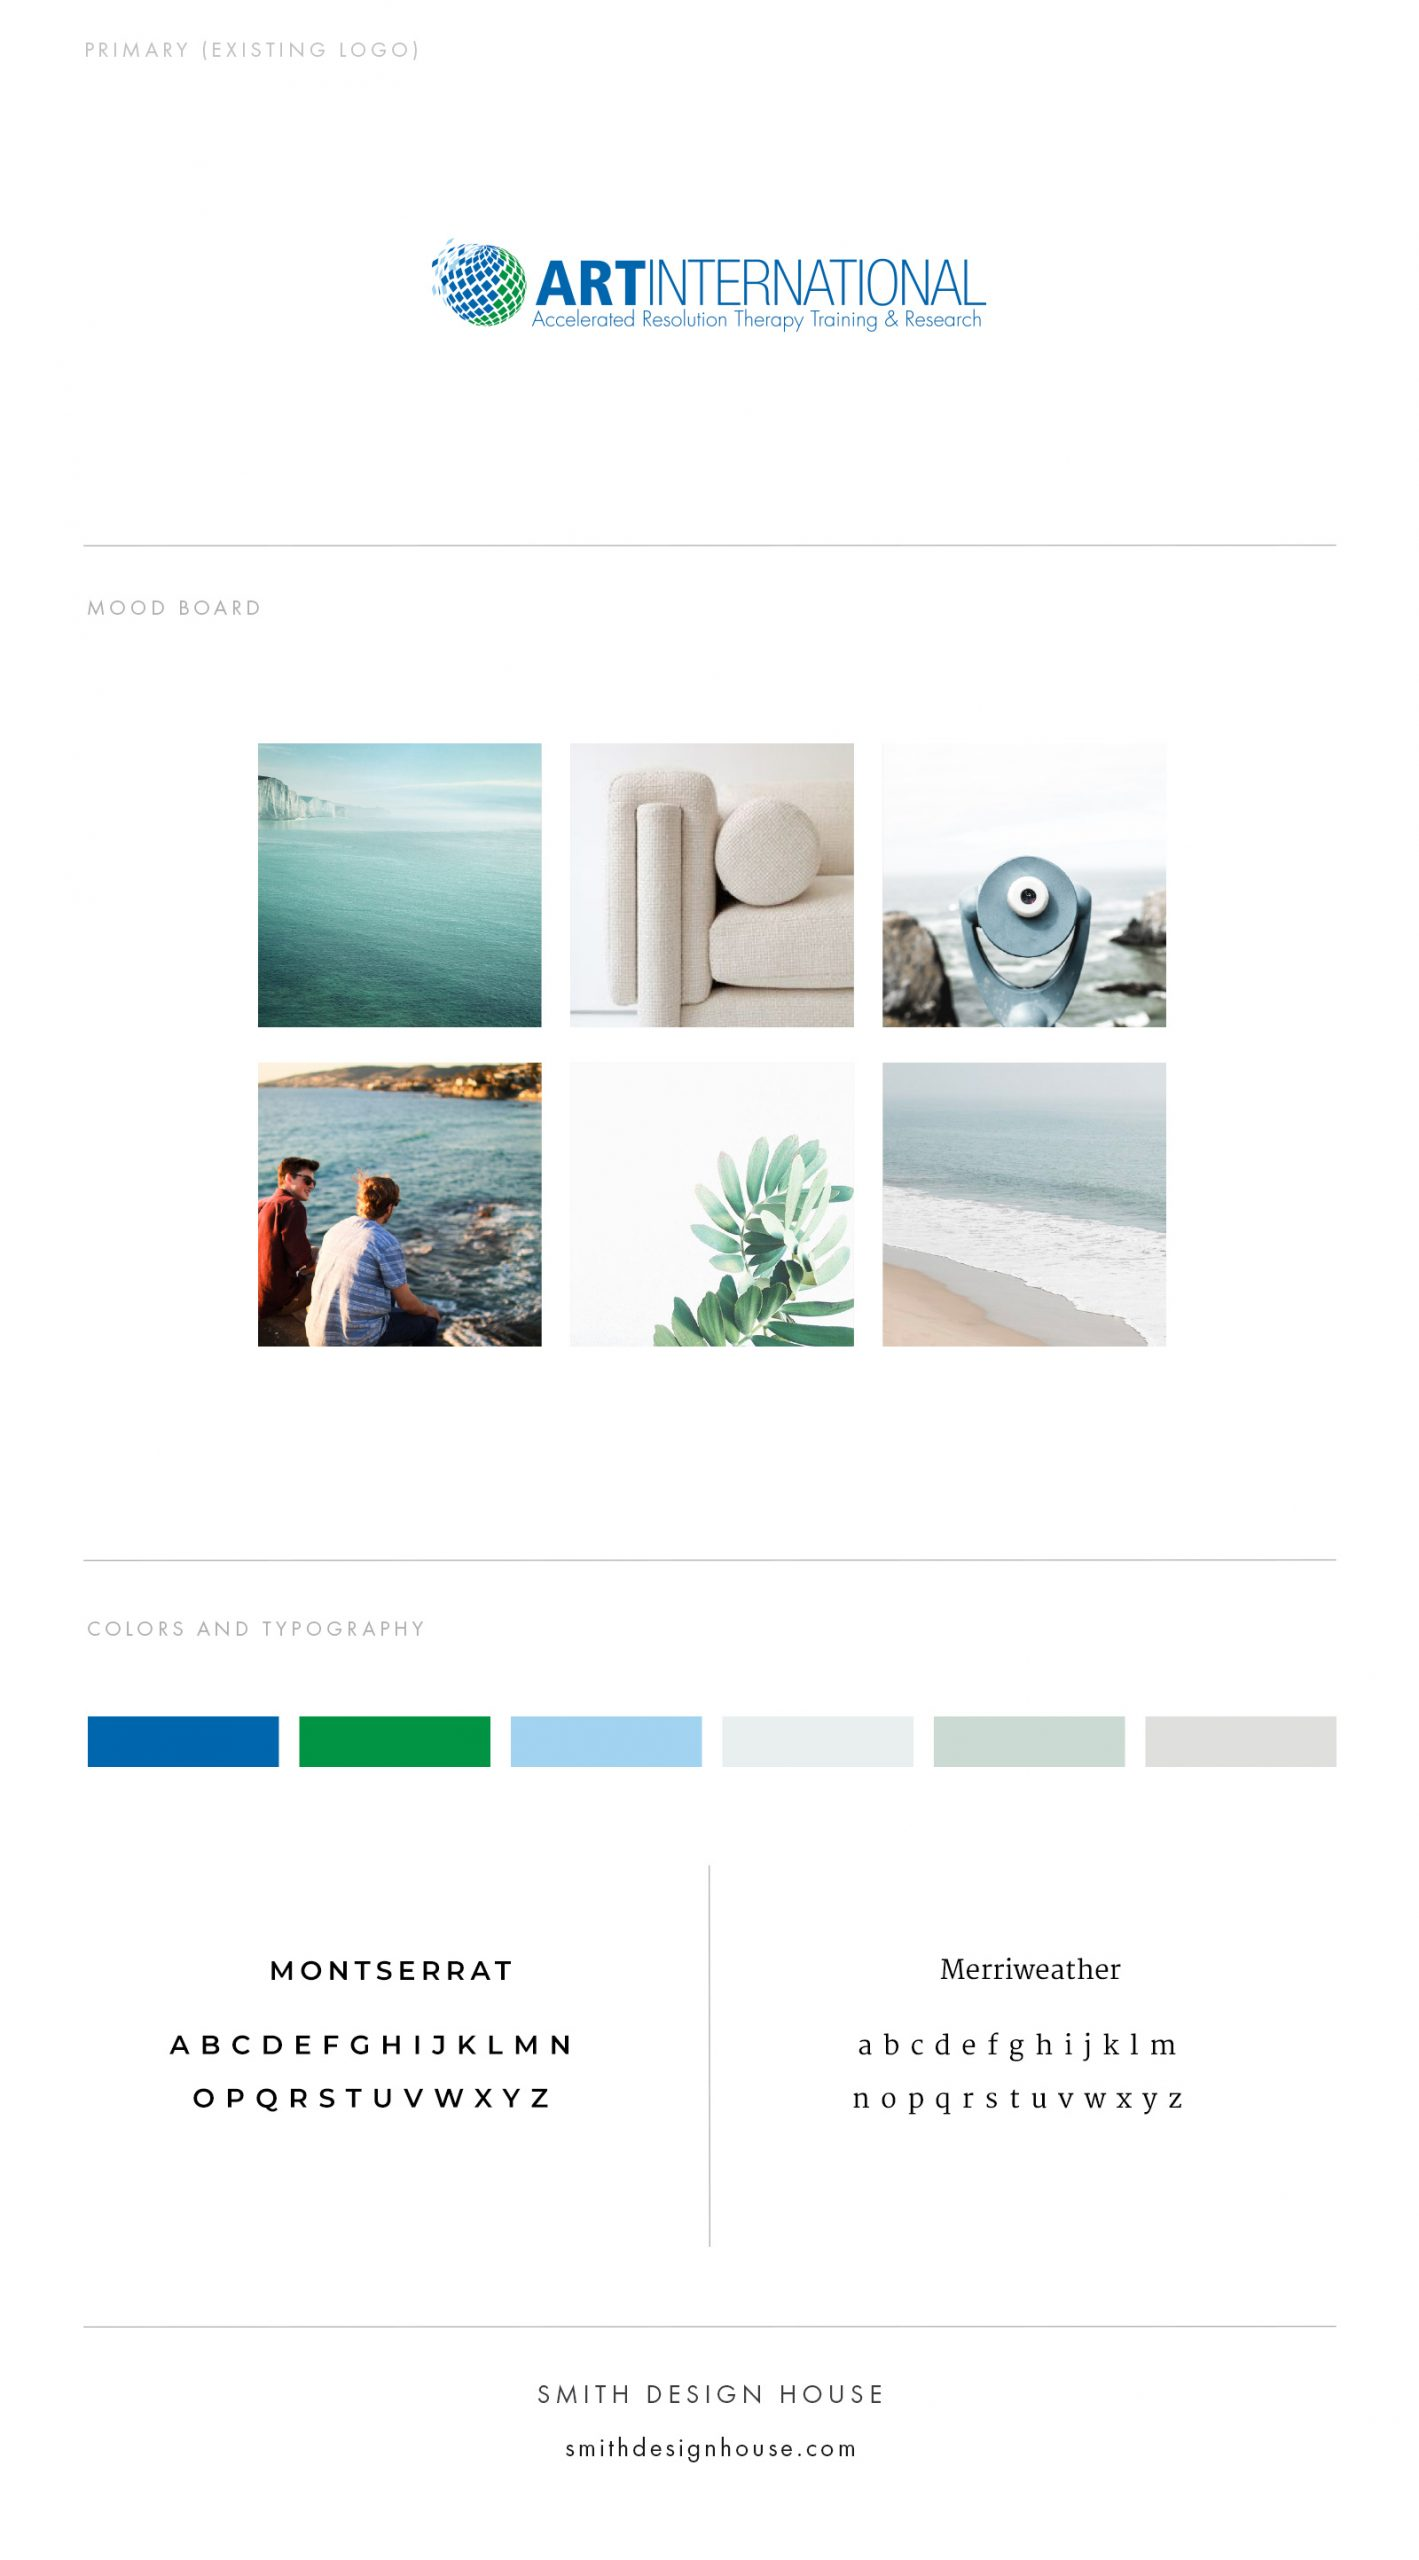 ART International creative direction by Smith Design House